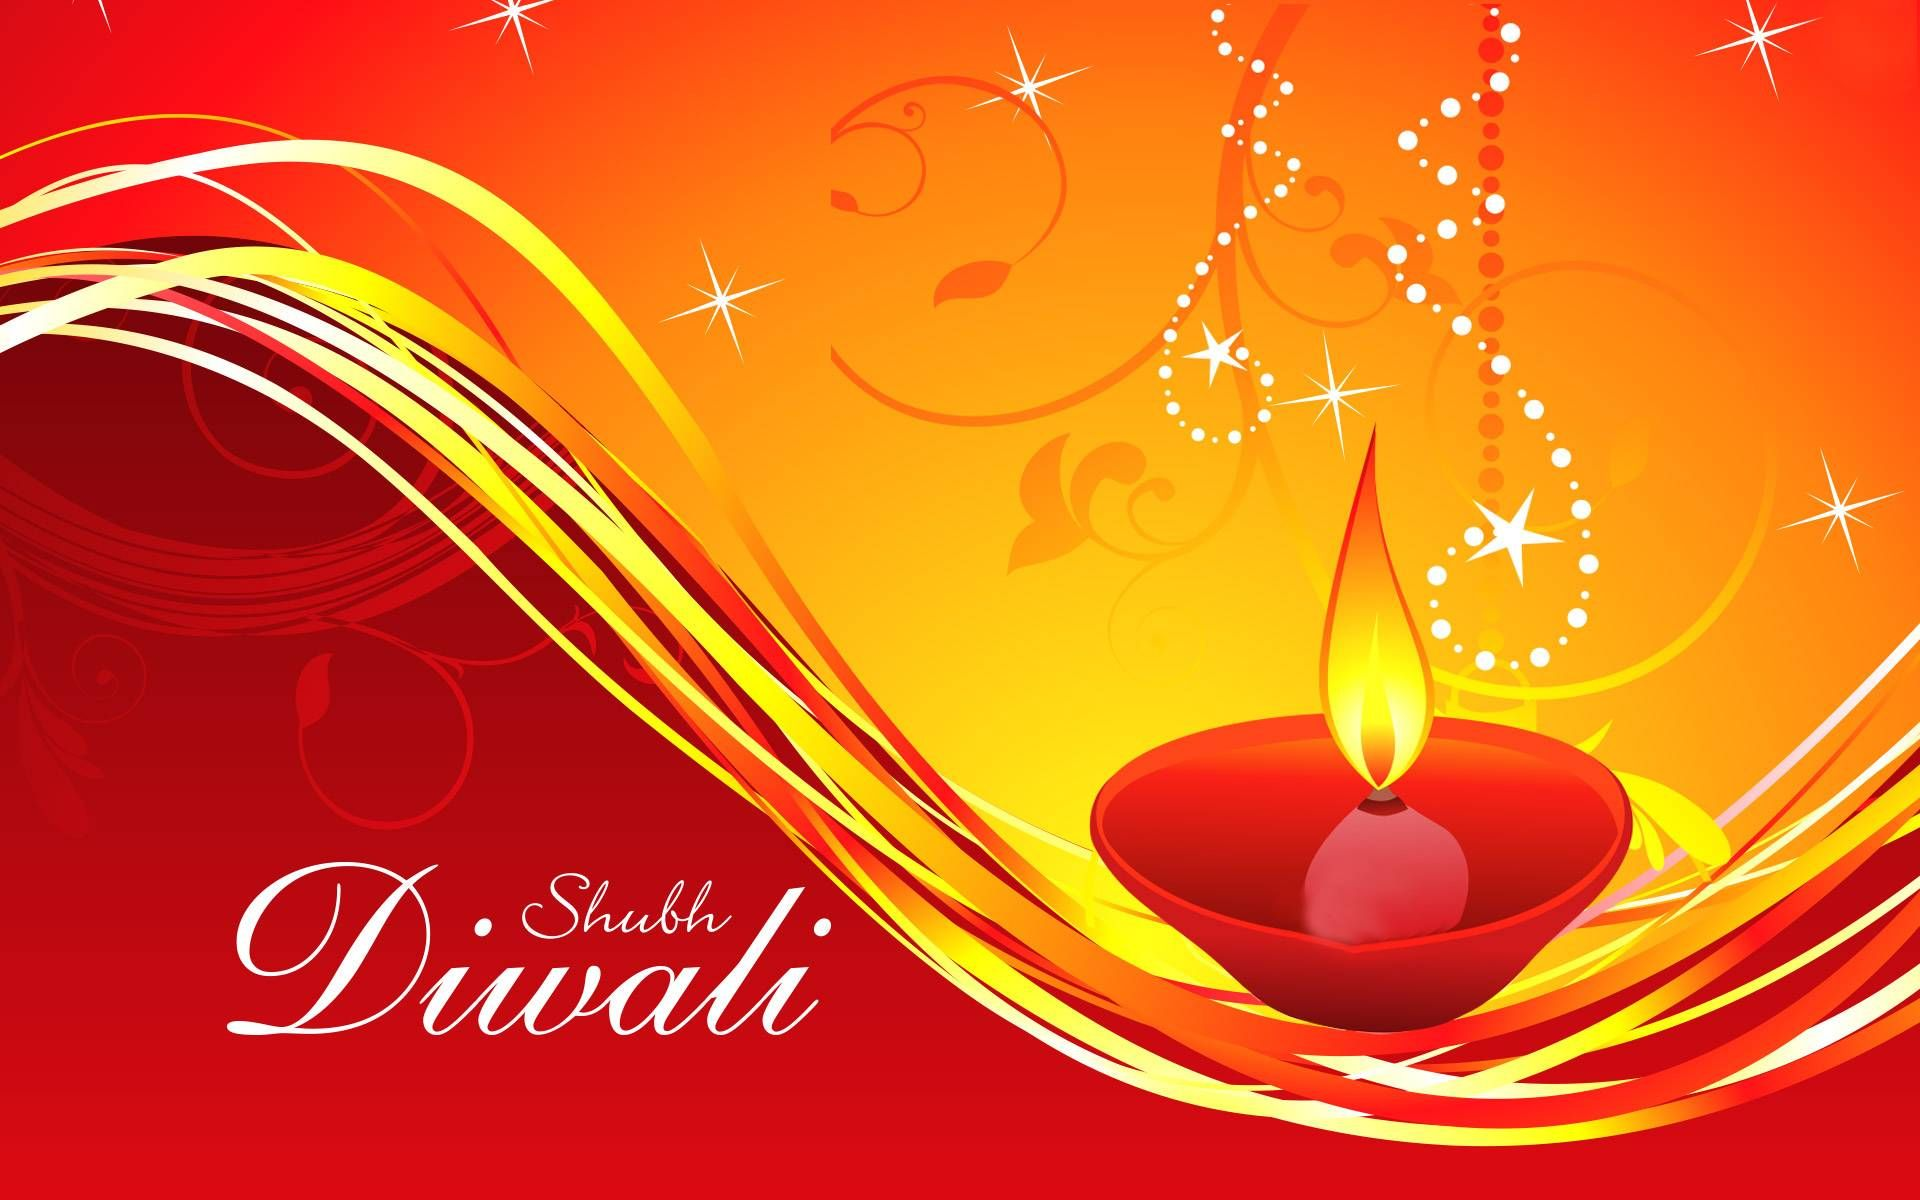 Happy diwali 2015 download free new sms wallpapers and greeting happy diwali 2015 download free new sms wallpapers and greeting cards http kristyandbryce Image collections